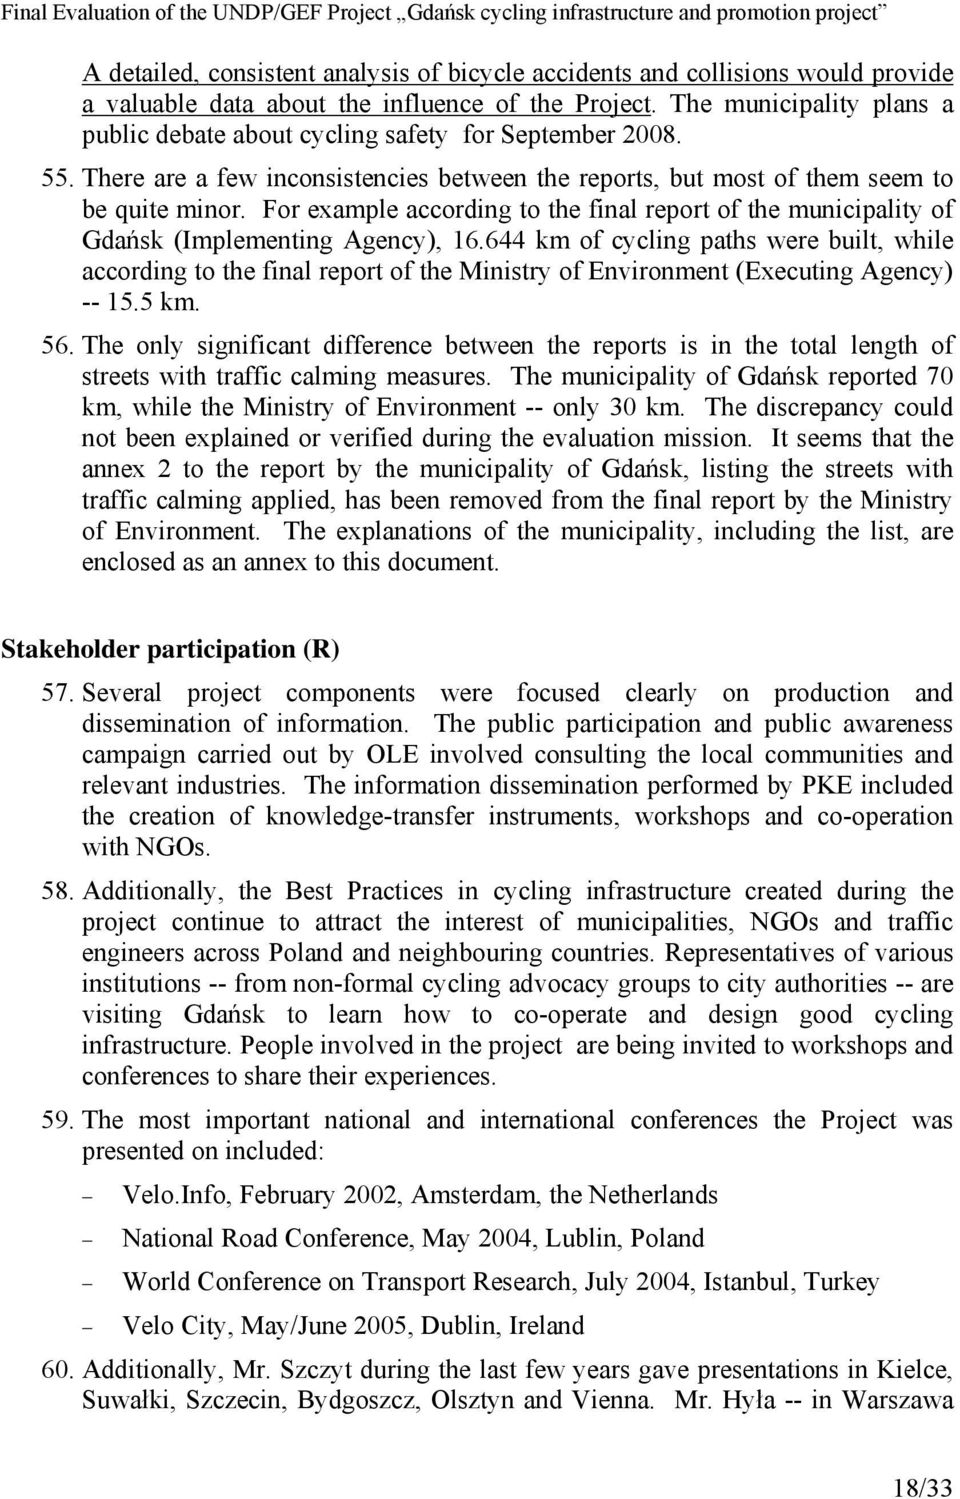 For example according to the final report of the municipality of Gdańsk (Implementing Agency), 16.